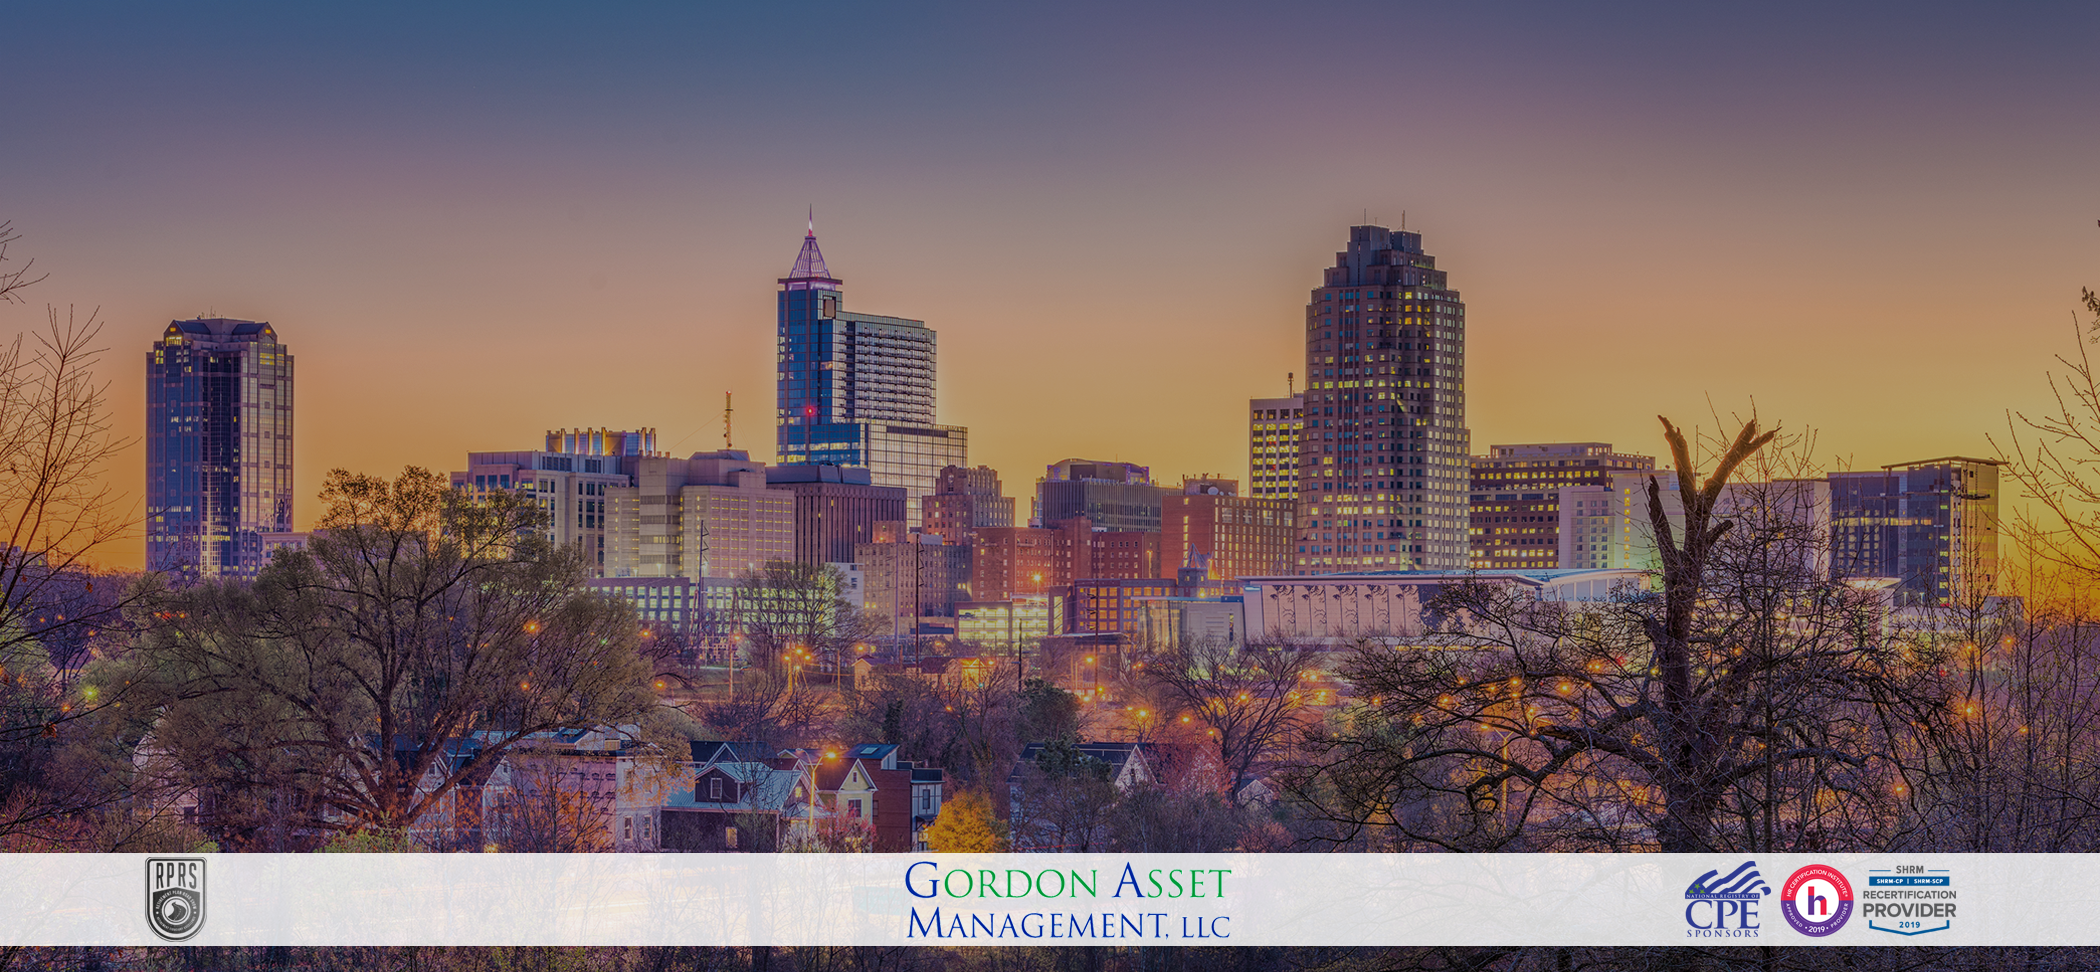 2019 NORTH CAROLINA - FIDUCIARY SUMMITPART OF THE RETIREMENT PLAN ROAD SHOW